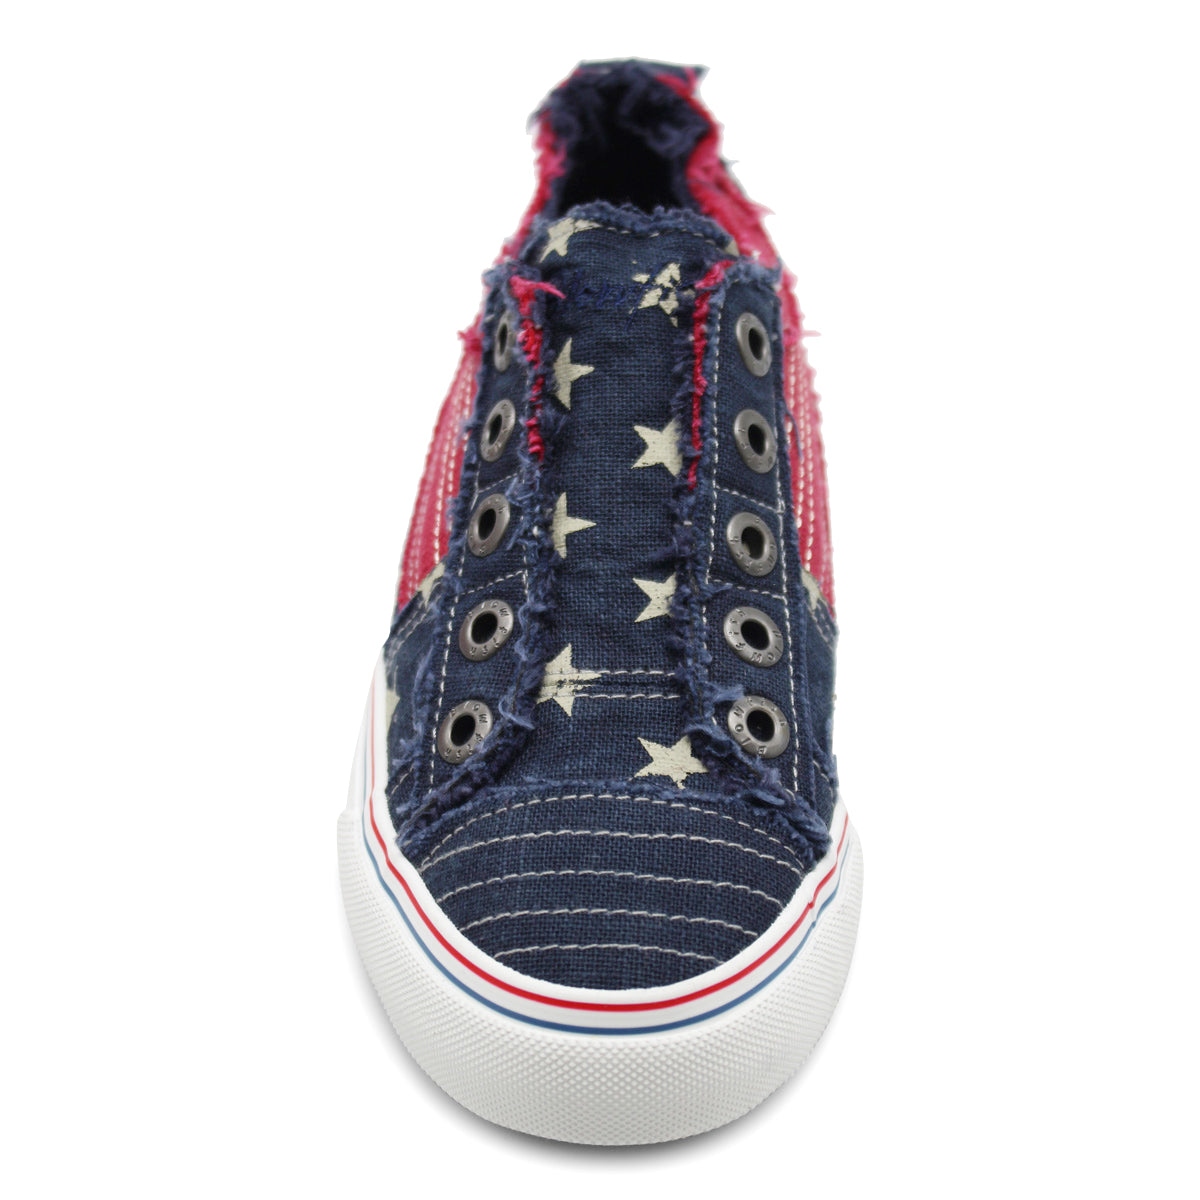 Blowfish Play Sneakers   Stars and